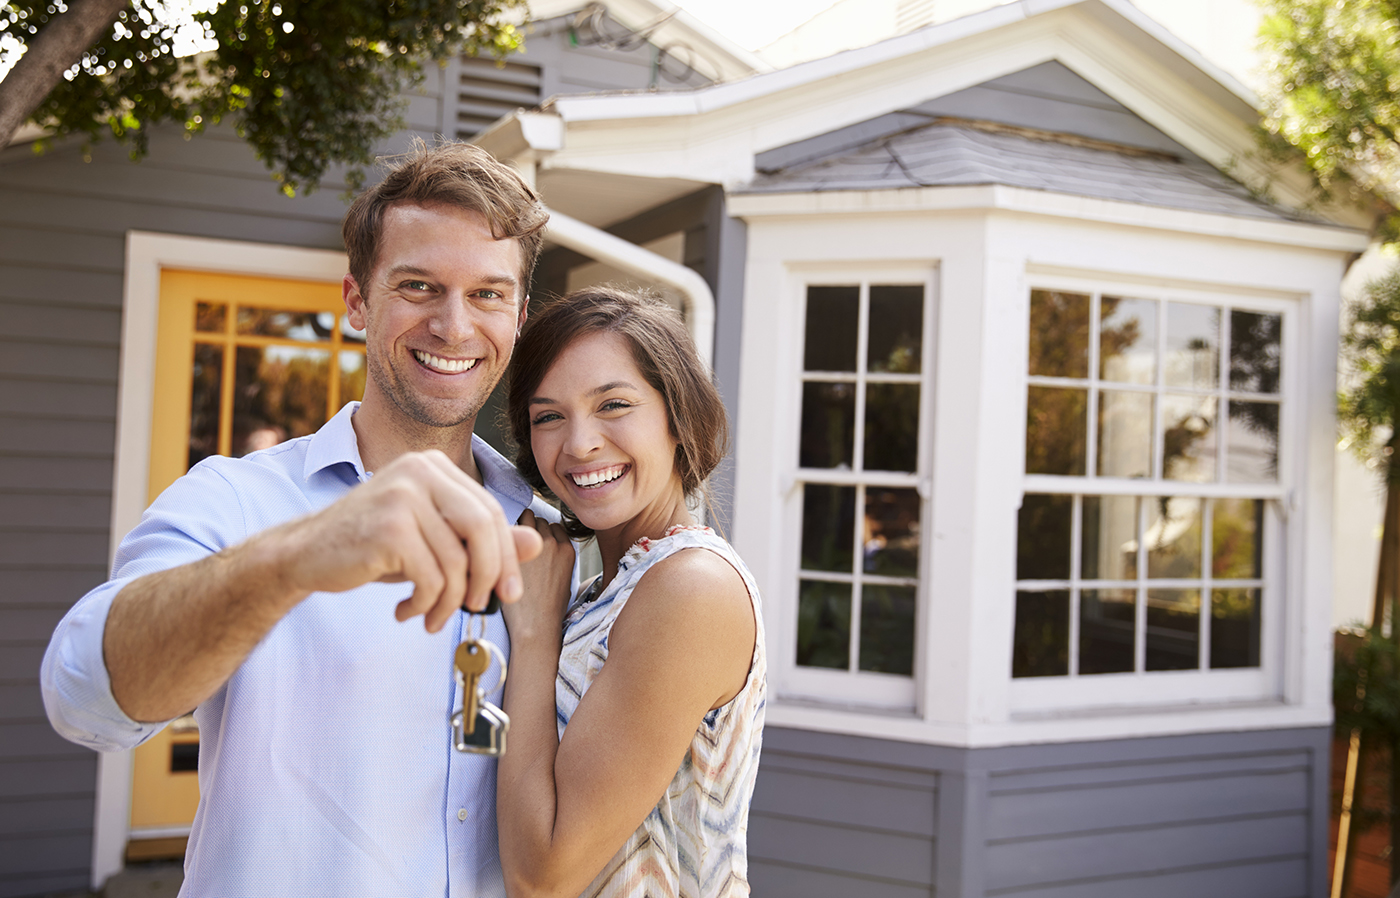 Couple With Keys Standing Outside New House After Home Inspection Services Were Provided